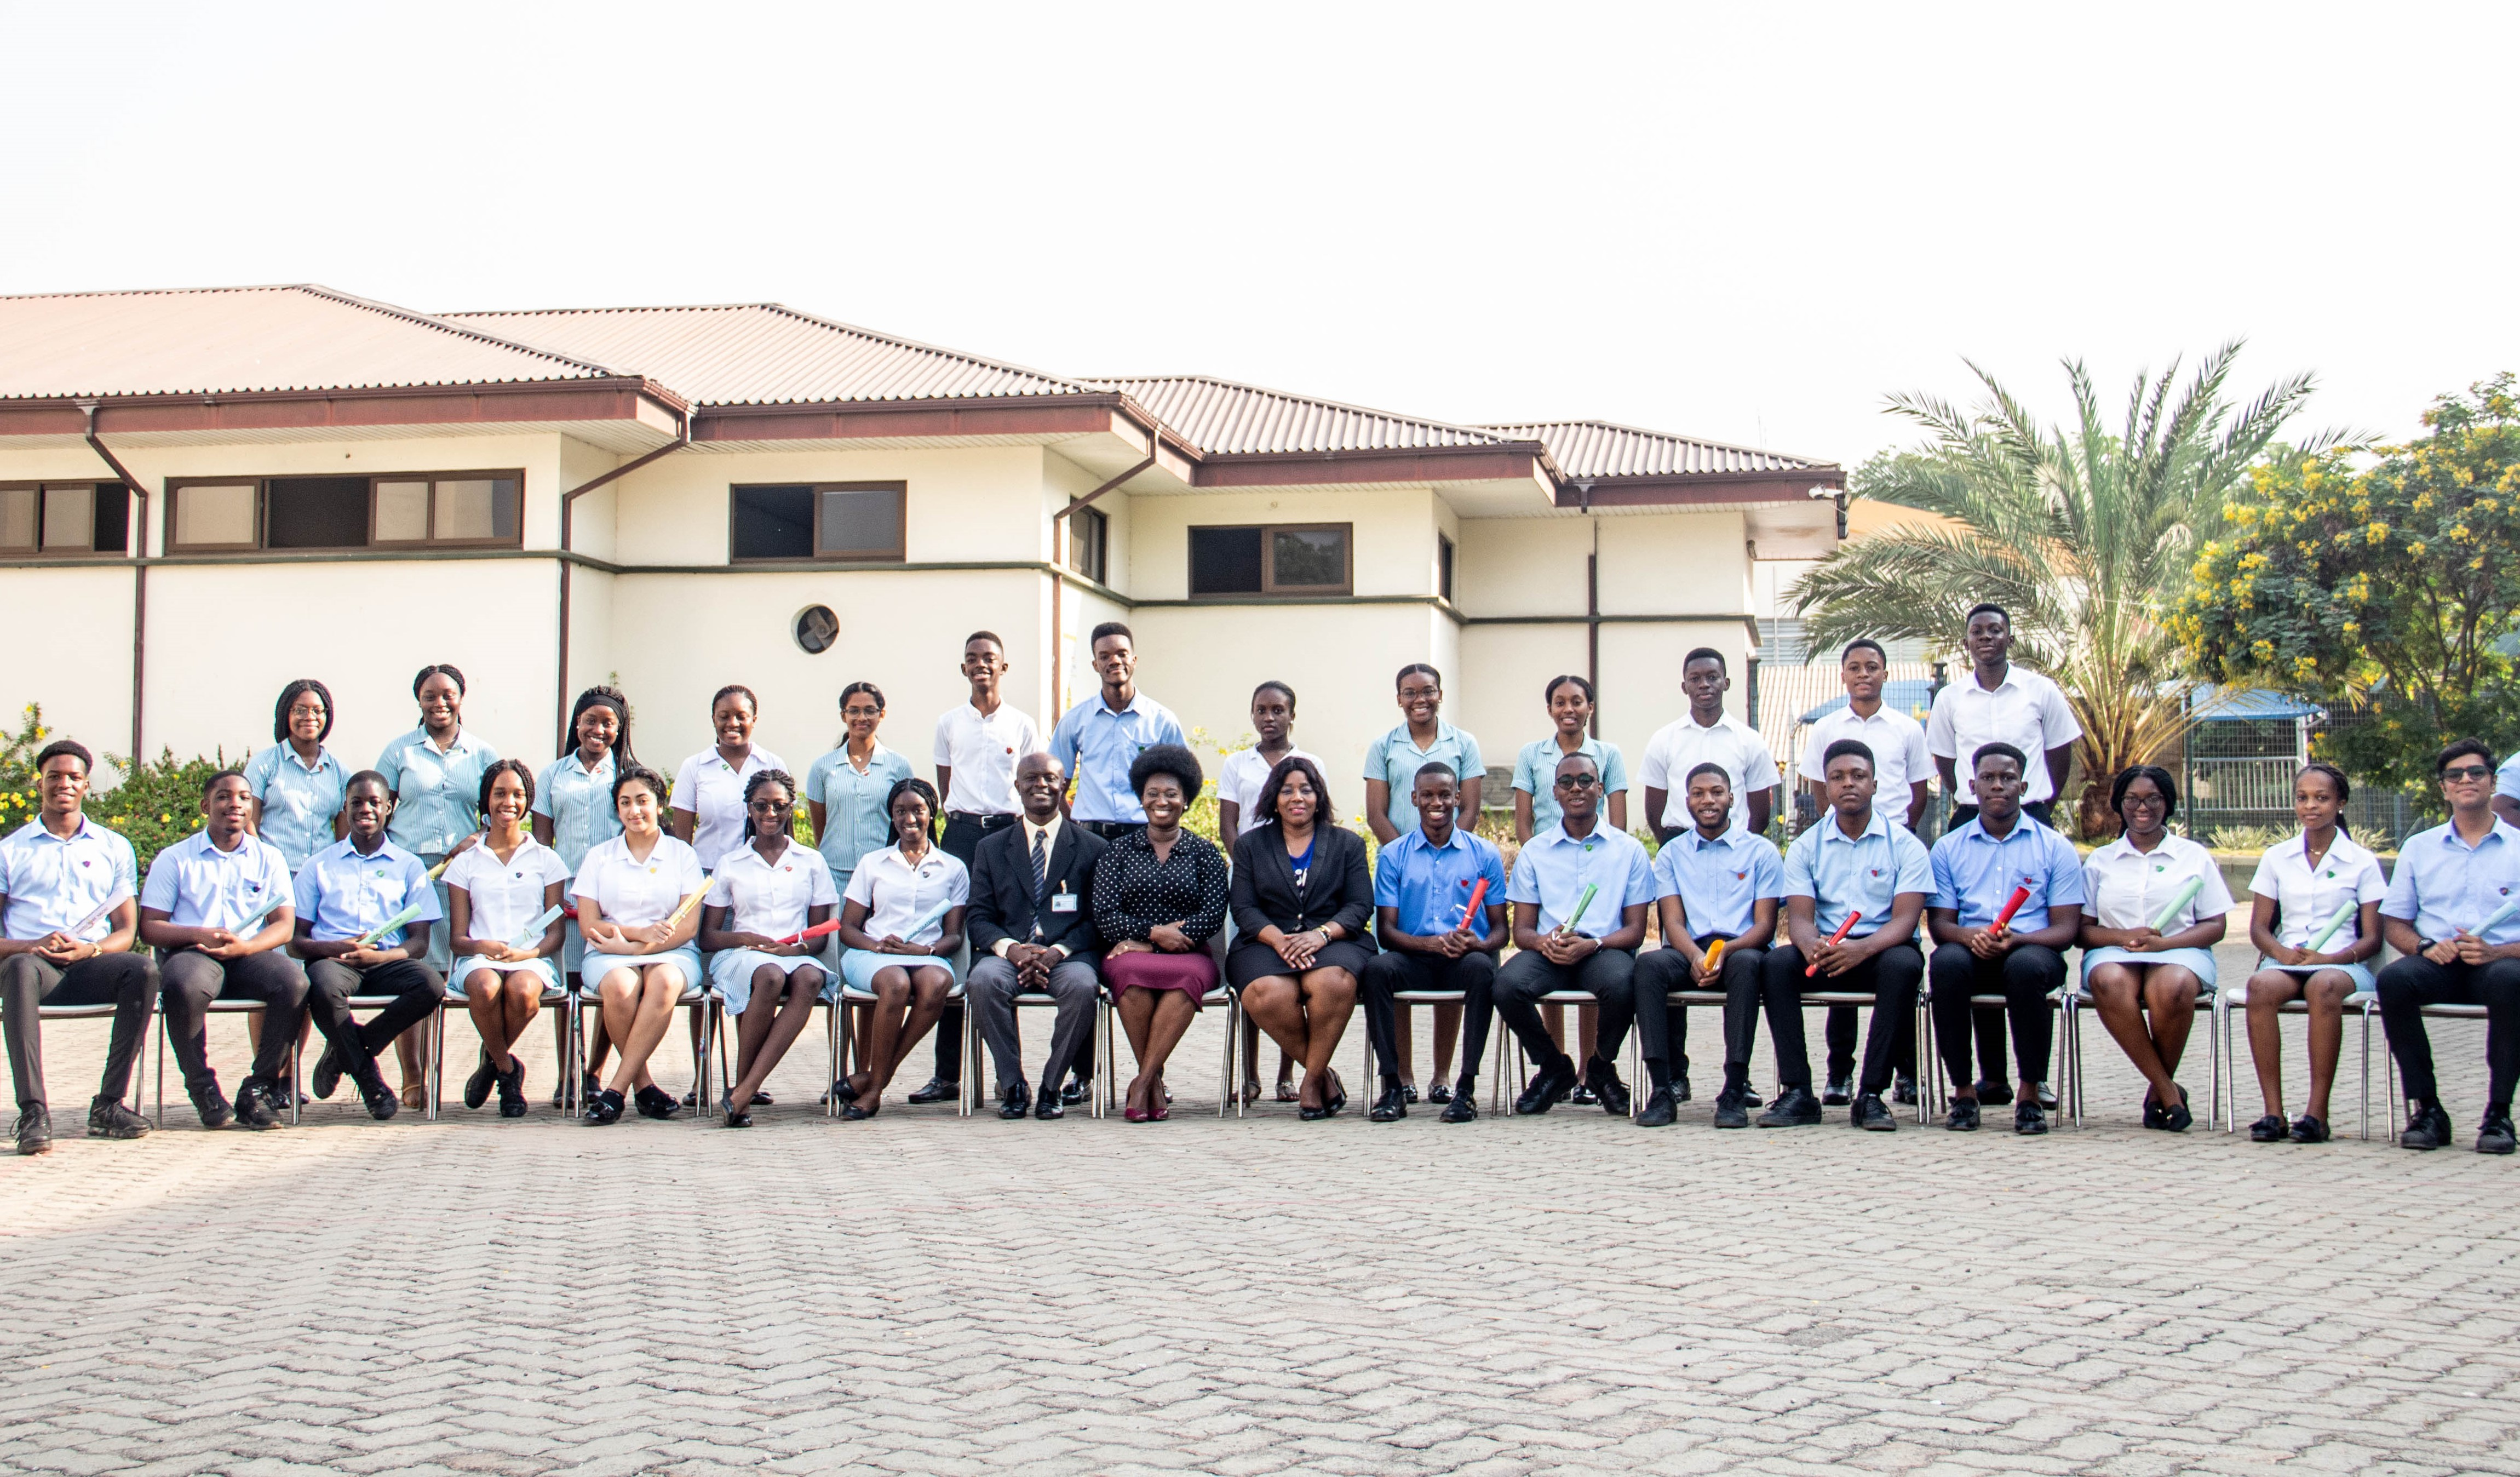 Congratulations to our newly elected 2020-2021 Secondary School Prefects